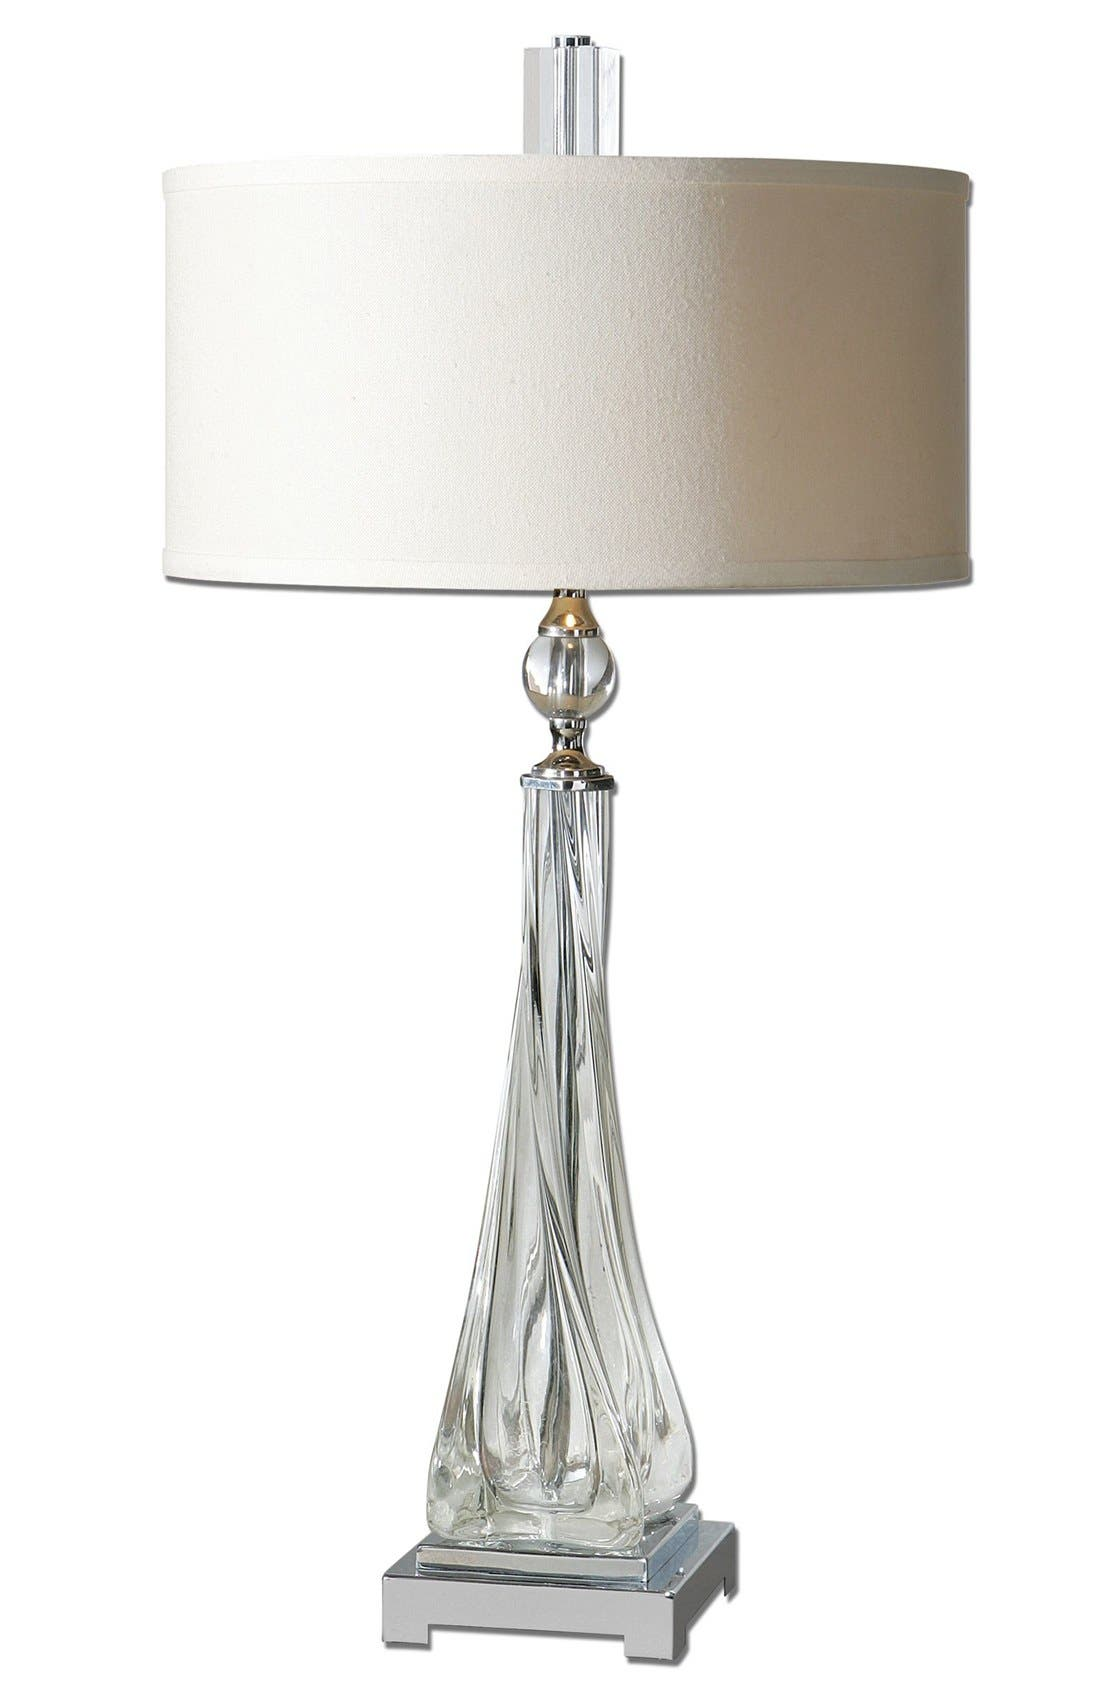 Alternate Image 1 Selected - Uttermost 'Grancona' Glass Table Lamp